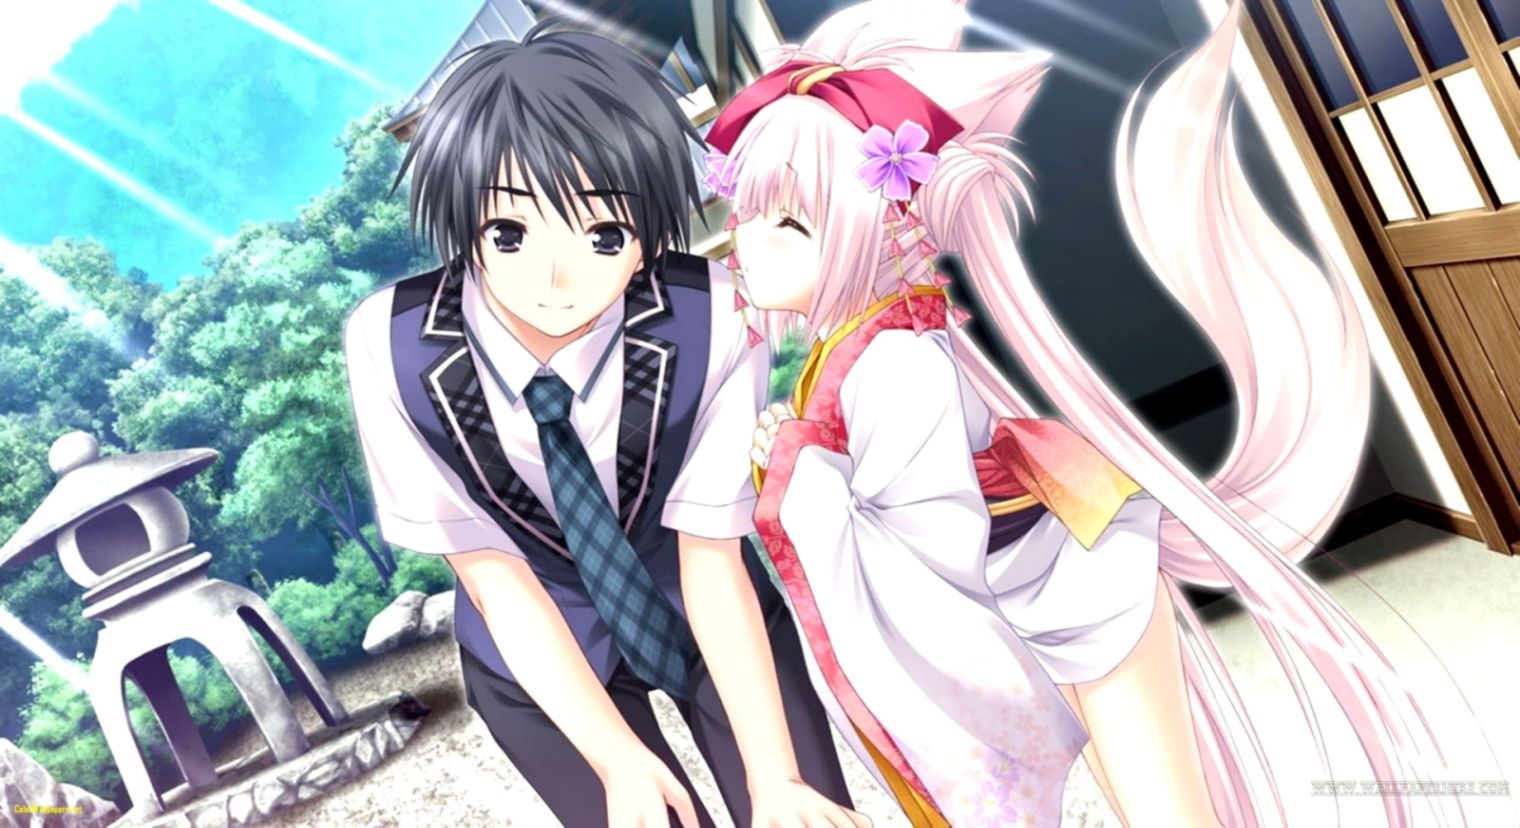 Couples Anime Wallpapers Posted By John Tremblay